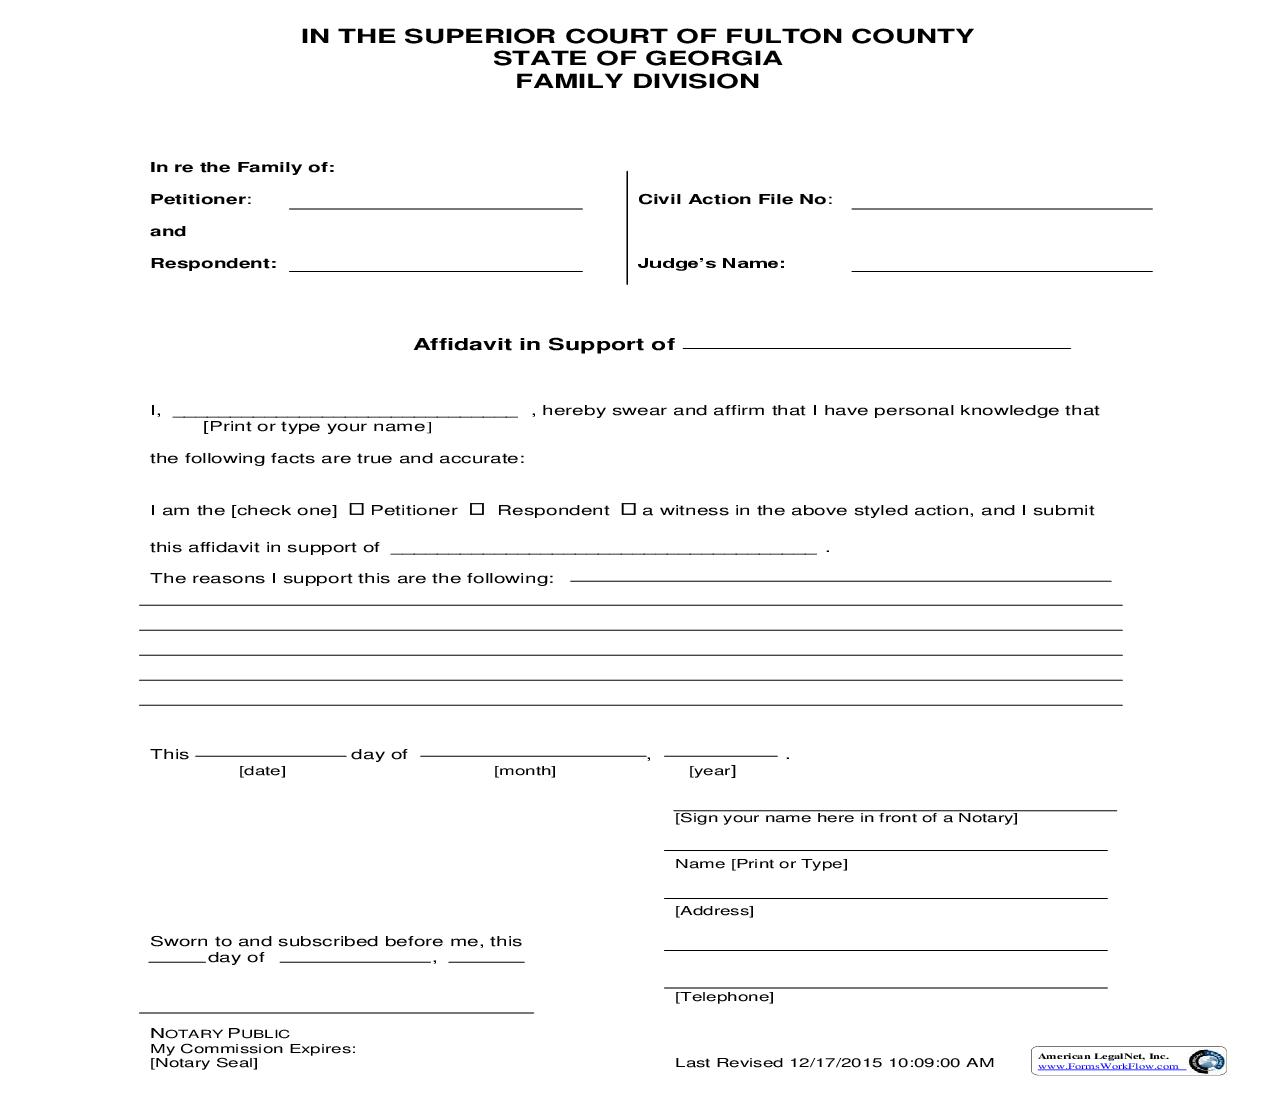 Affidavit In Support Of | Pdf Fpdf Doc Docx | Georgia